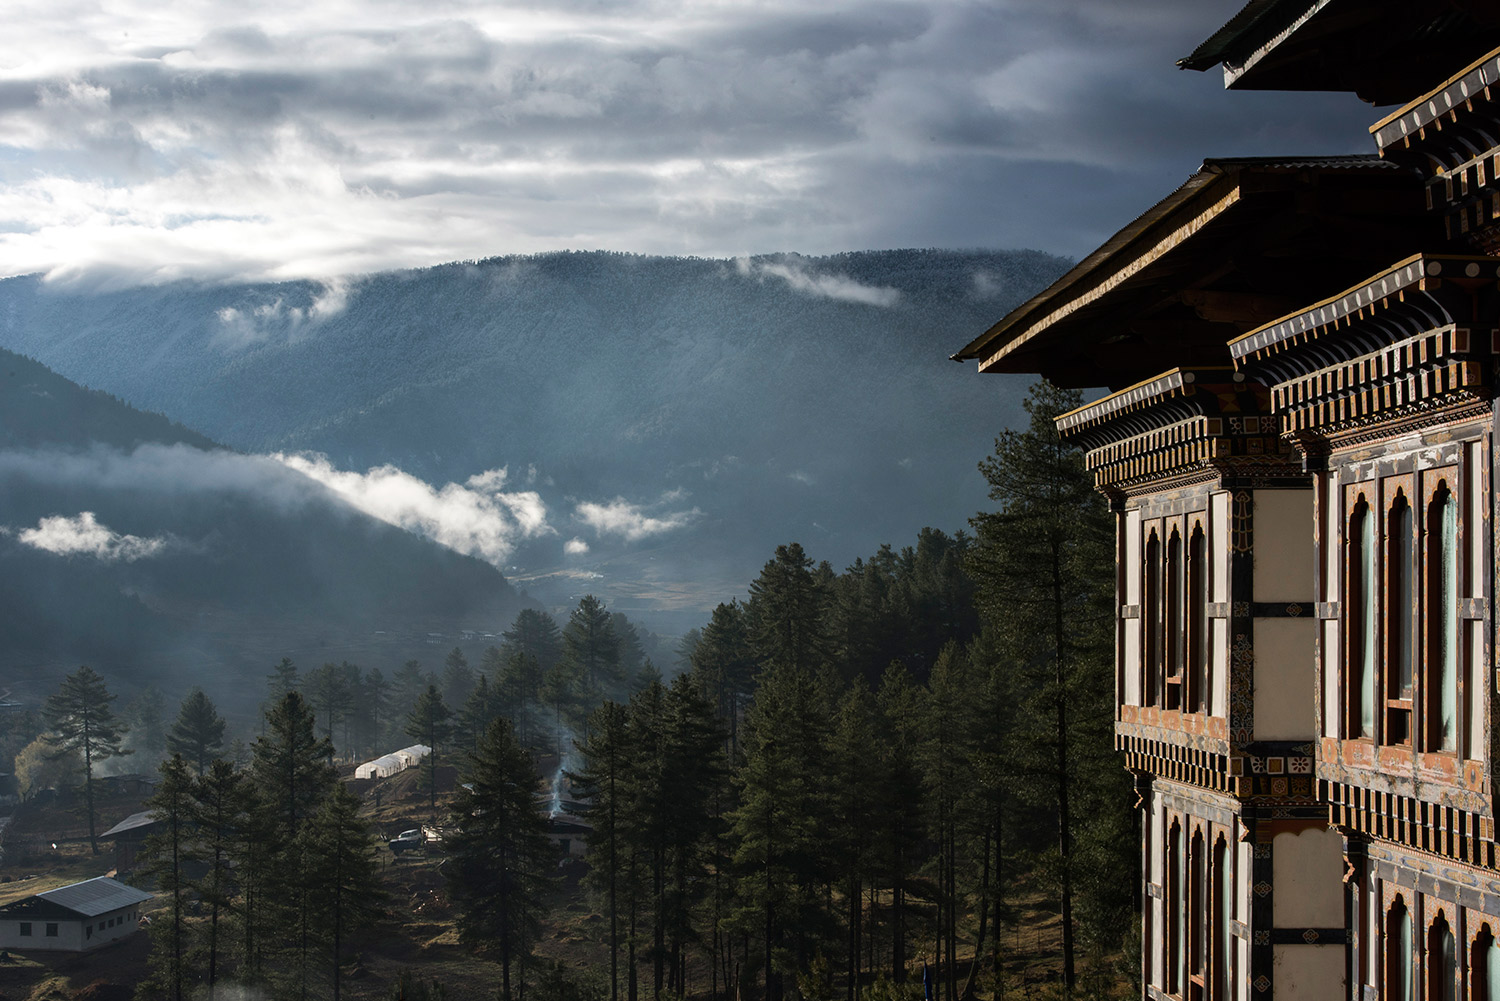 The Phobjikha Valley in central Bhutan.